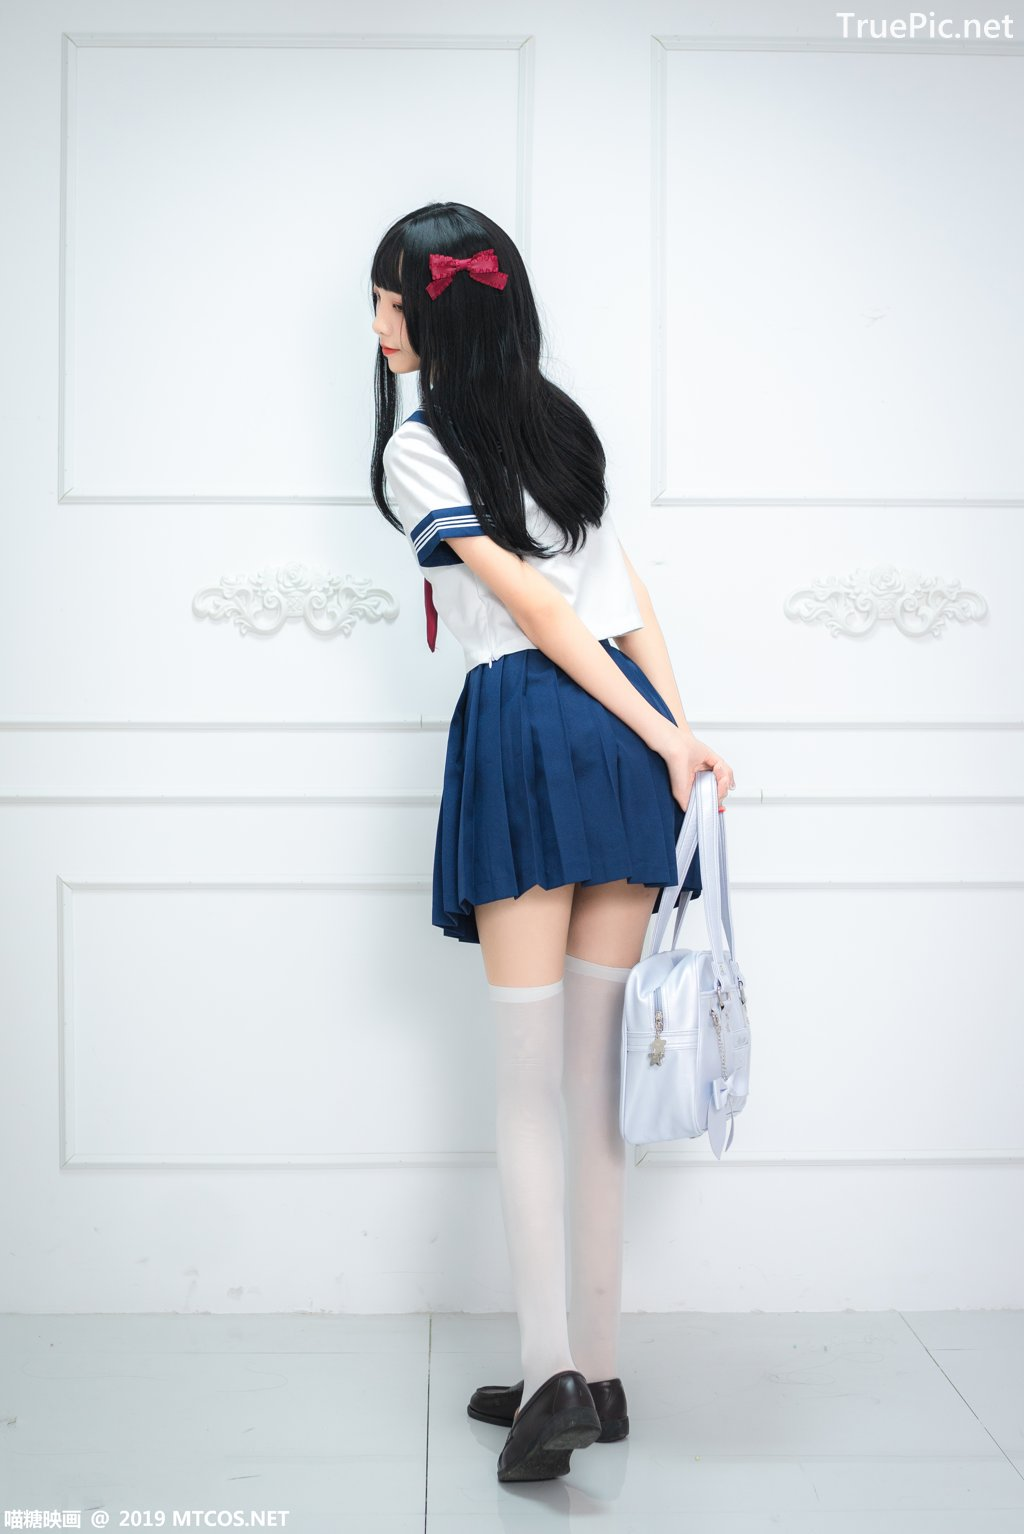 Image-MTCos-喵糖映画-Vol-012–Chinese-Pretty-Model-Cute-School-Girl-With-Sailor-Dress-TruePic.net- Picture-2